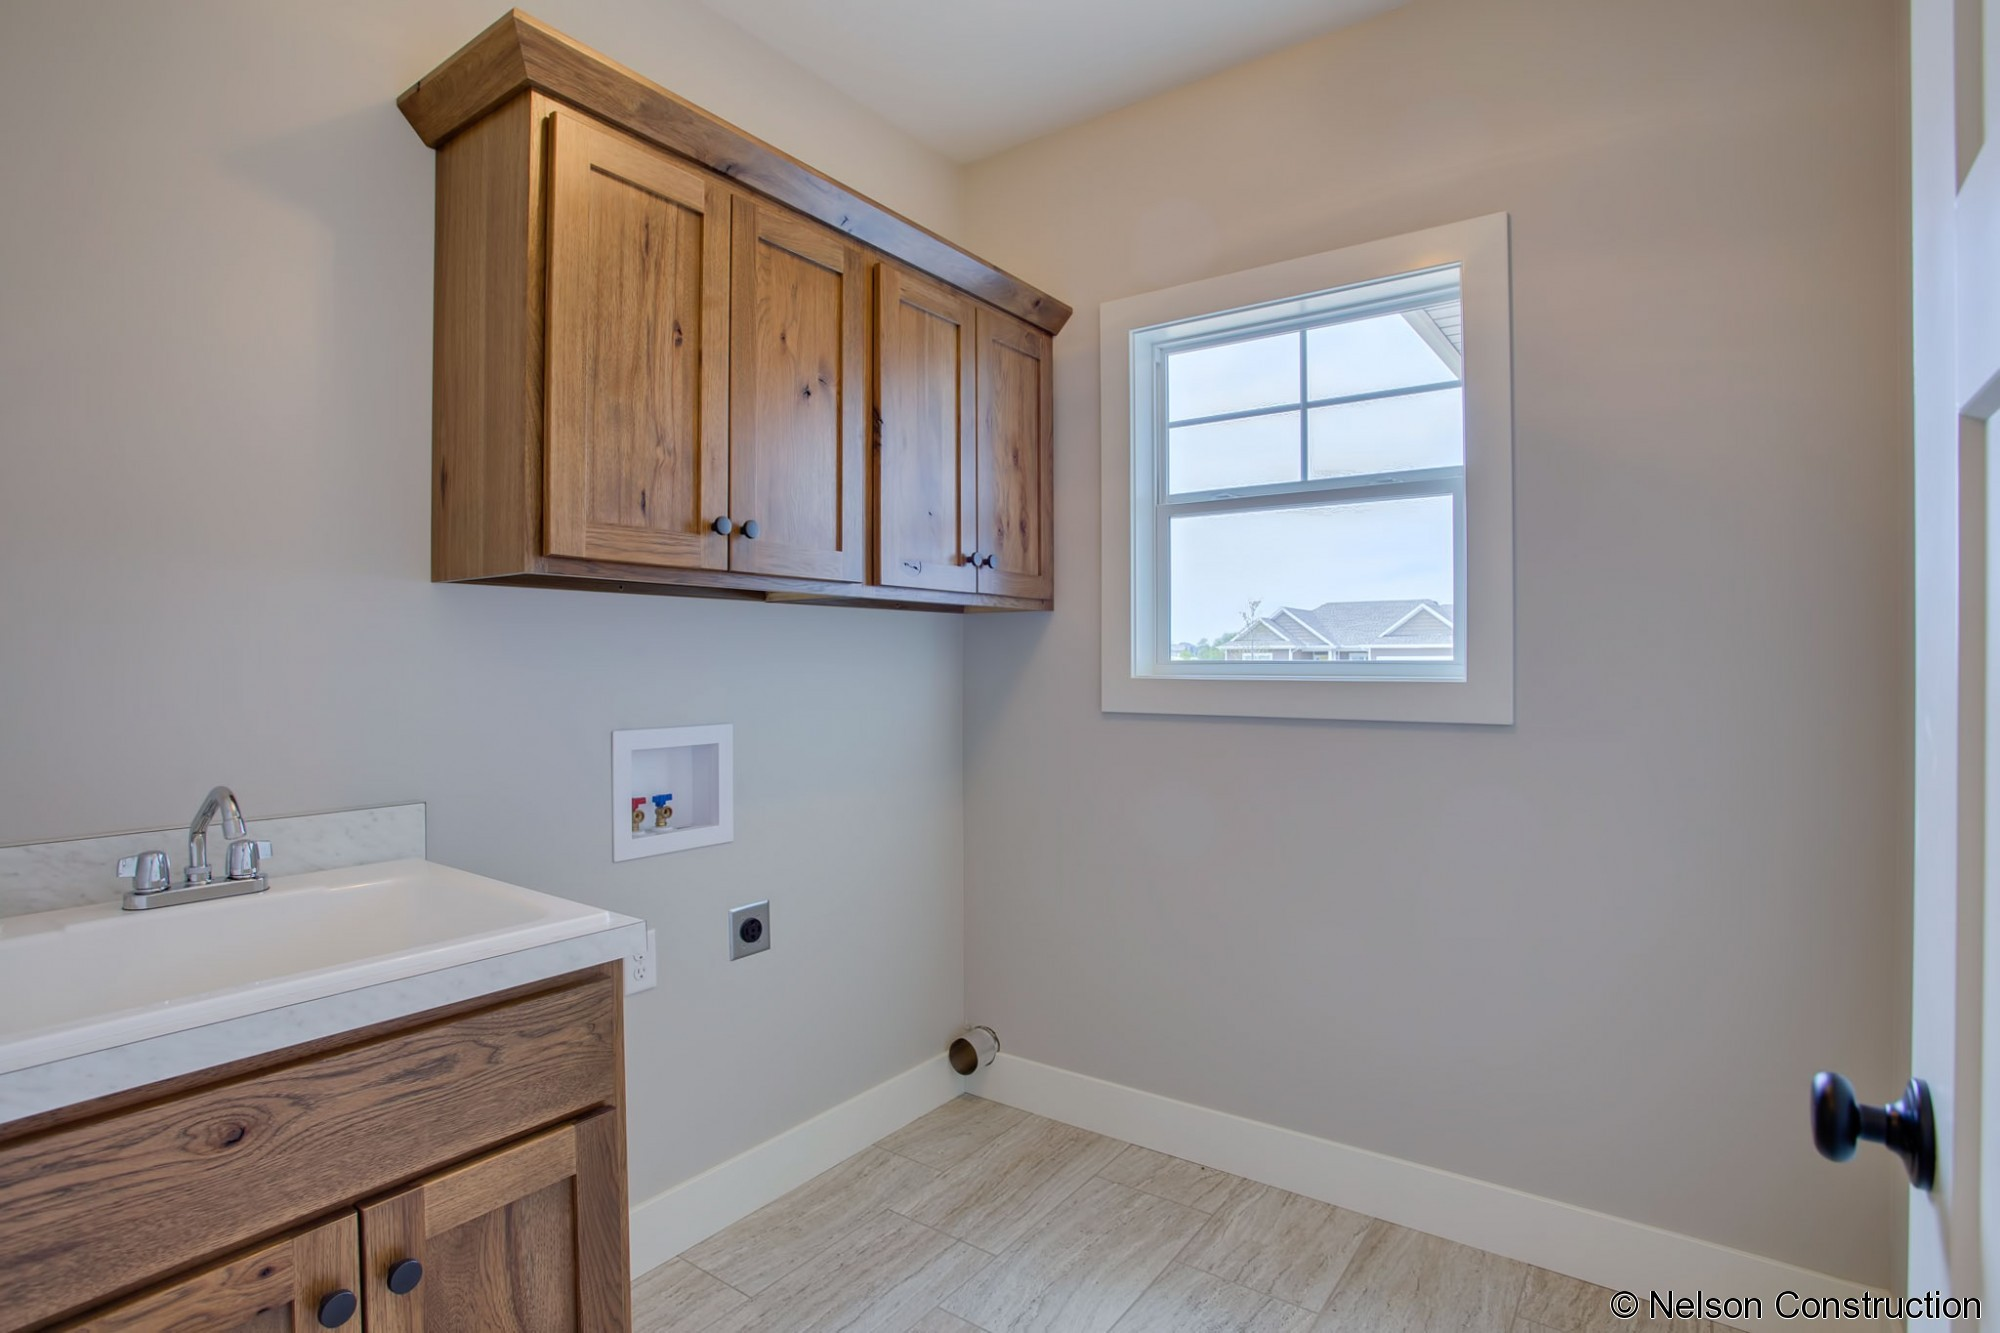 The laundry room in this Cherrydale has plenty of cabinets for storage and a large sink to make cleaning easier.